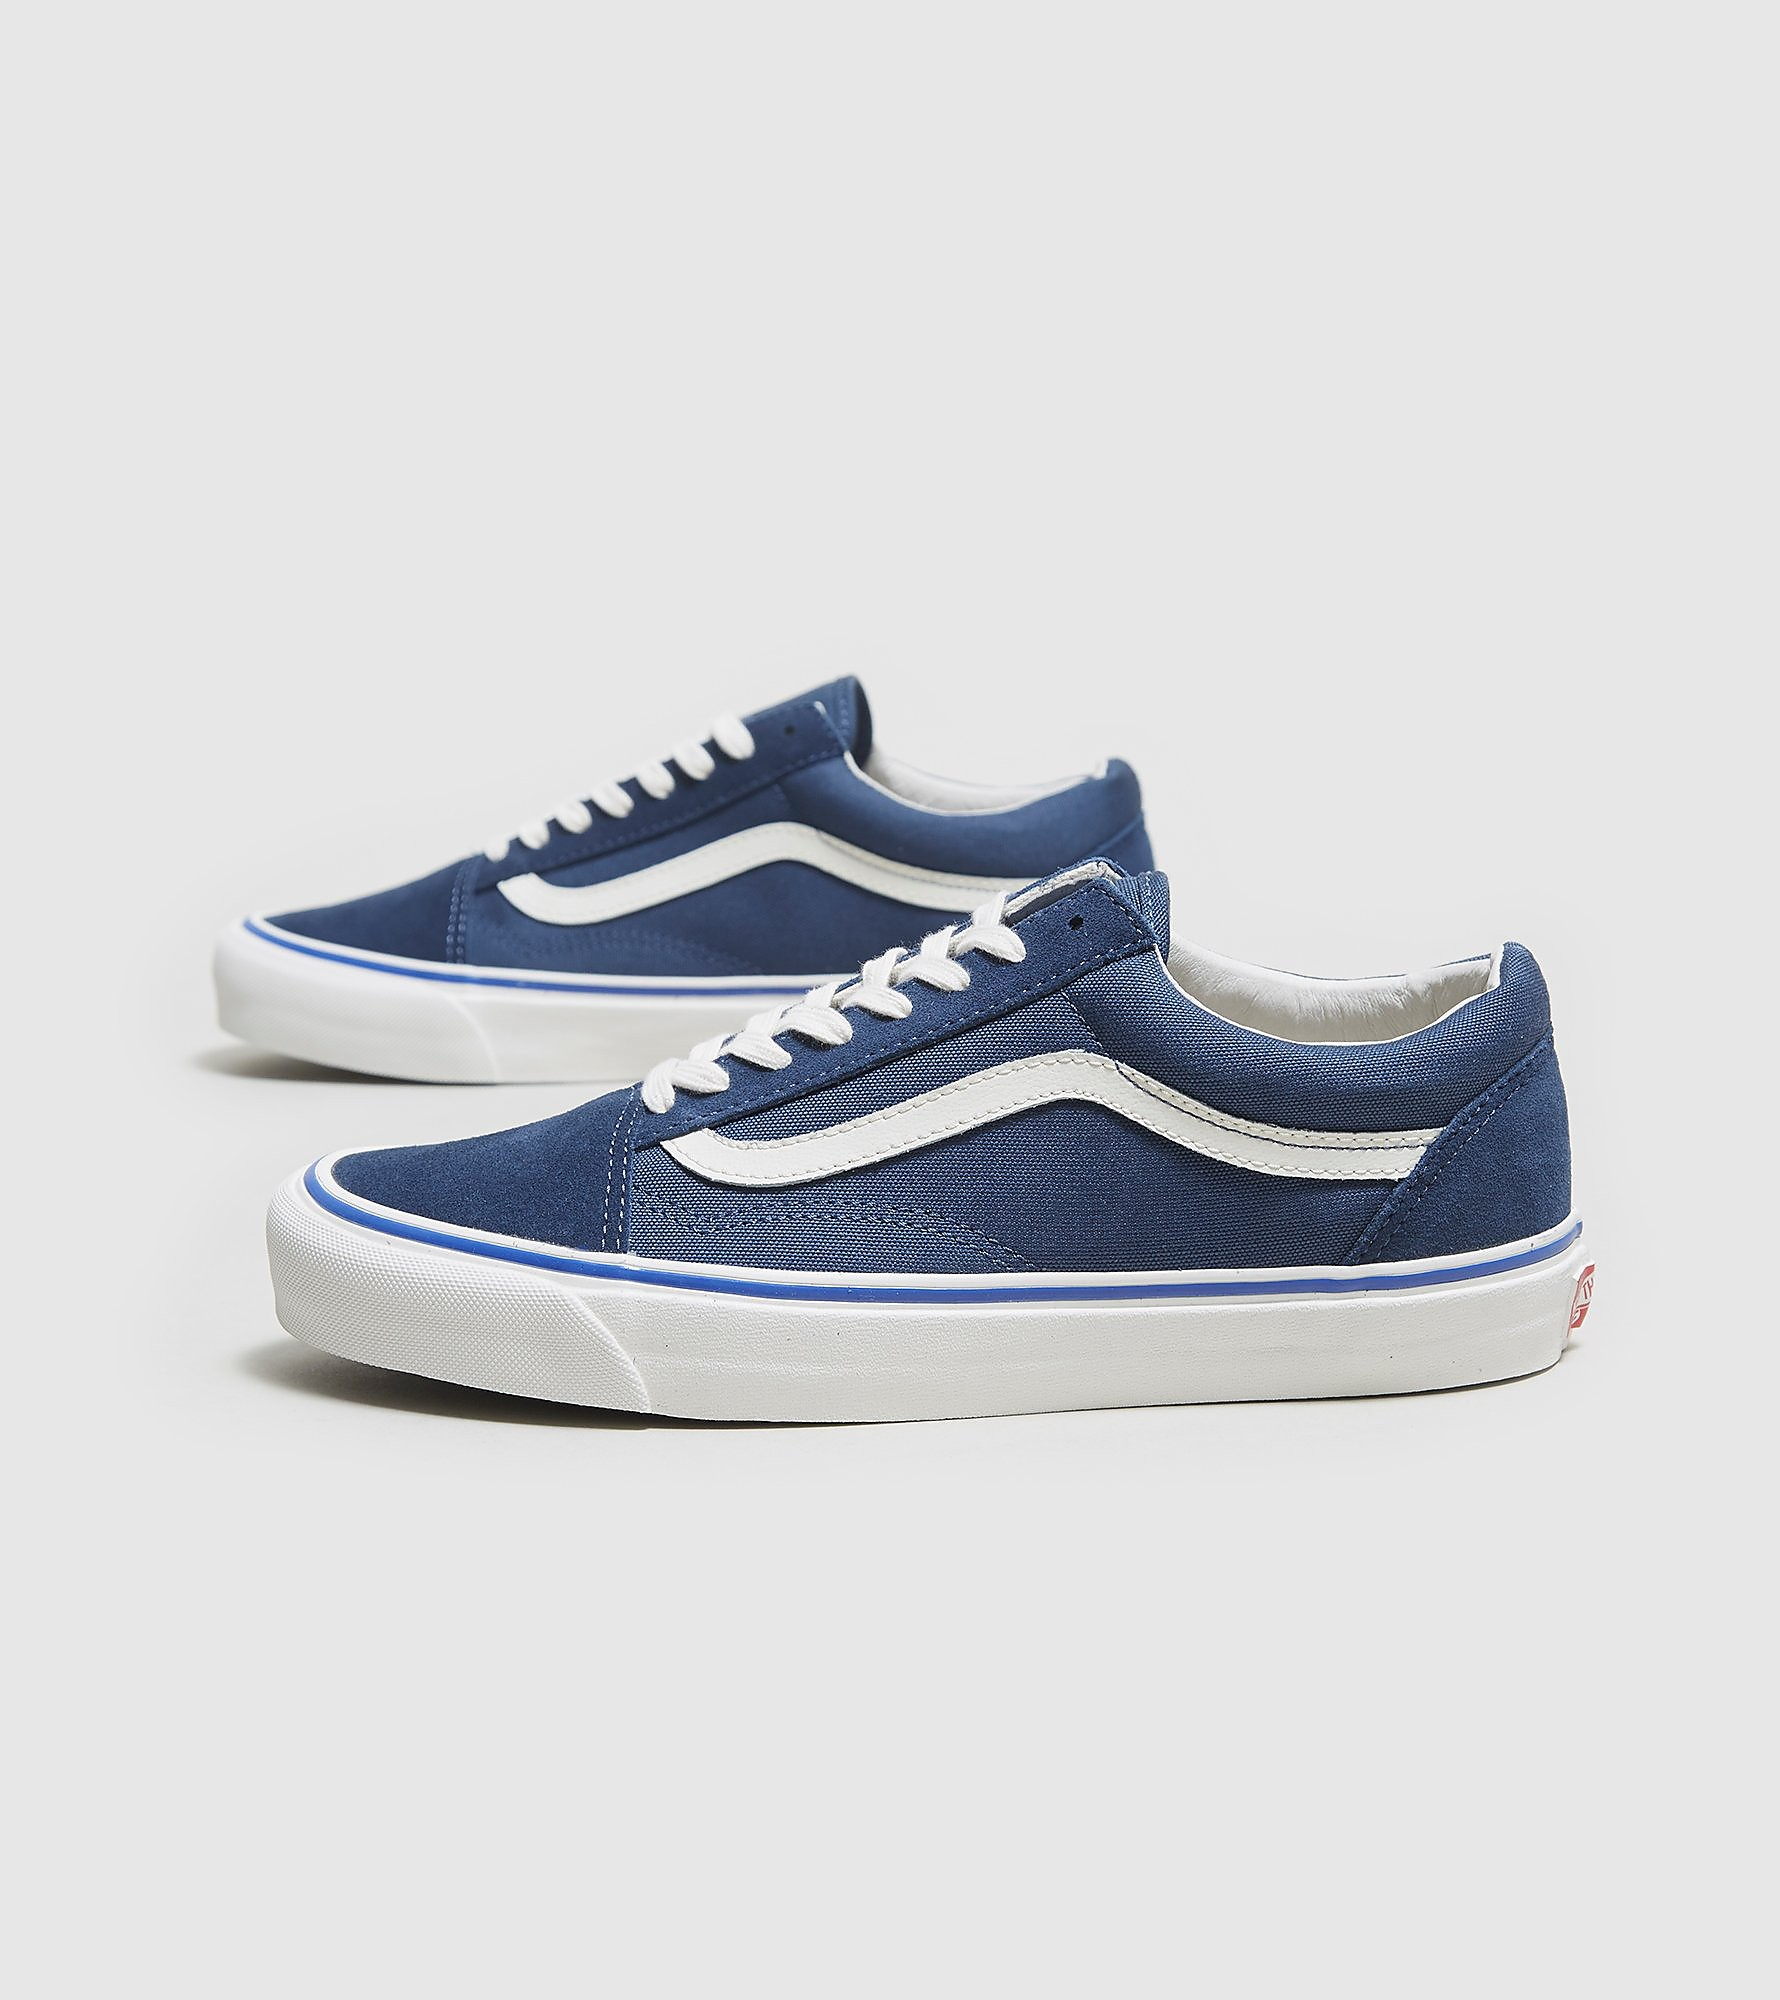 Vans Vault OG Old Skool